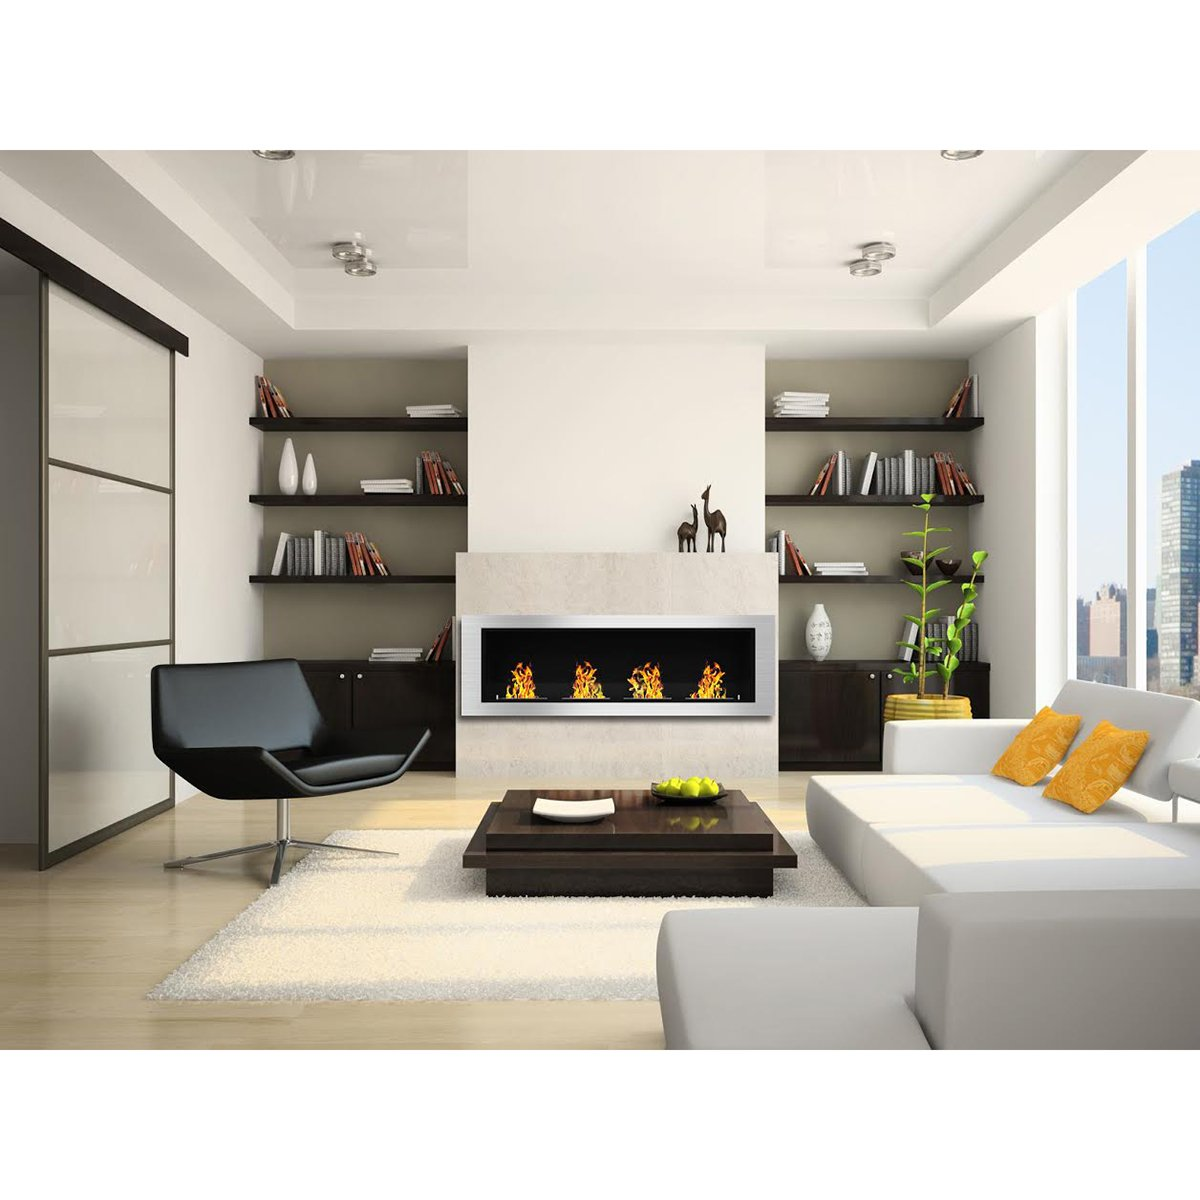 Buy Elite Flame Luxe Recessed Ventless Bio Ethanol Wall Mounted Fireplace: Gel & Ethanol Fireplaces - Amazon.com ? FREE DELIVERY possible on eligible purchases